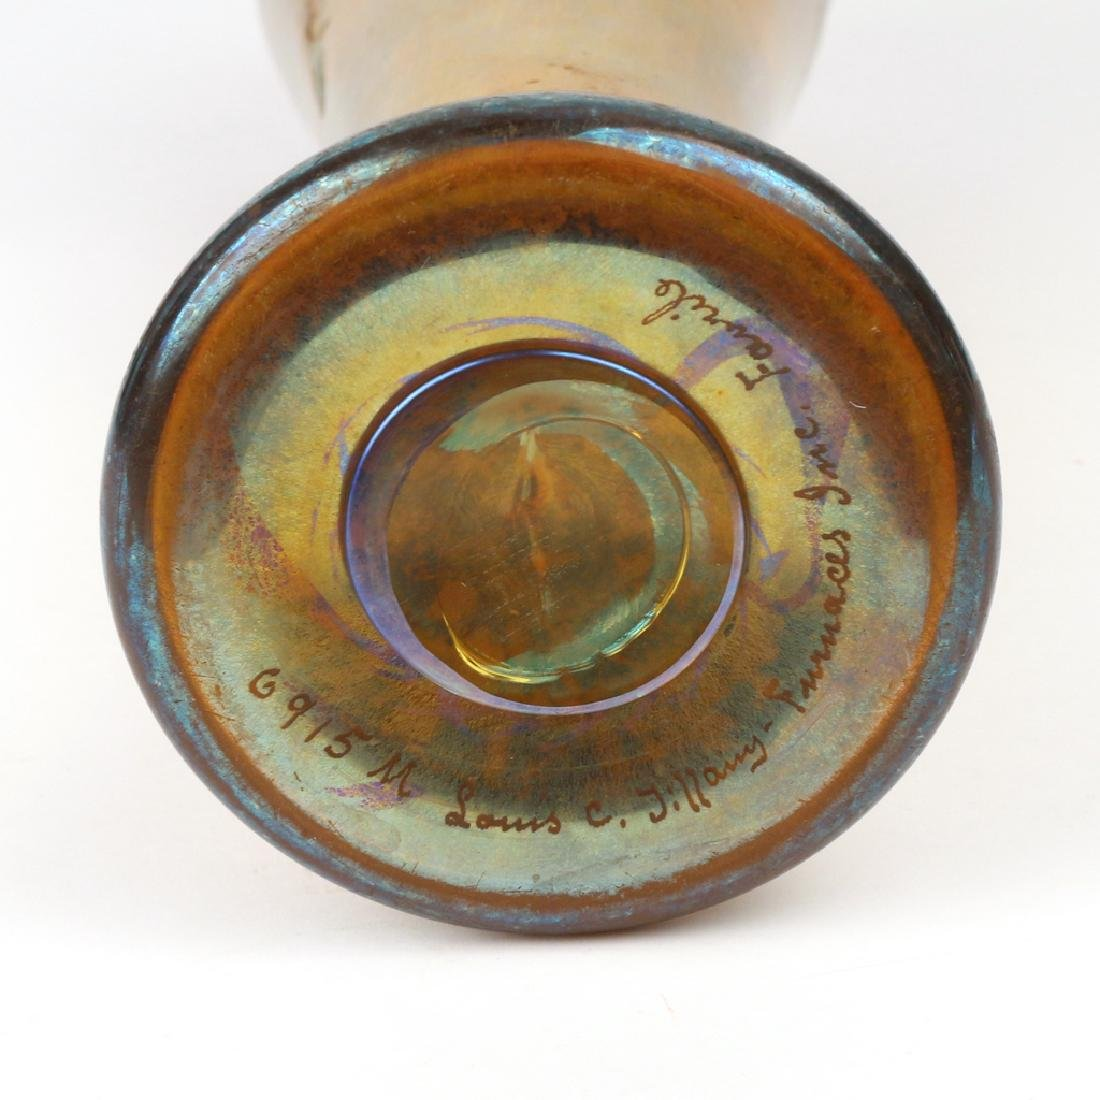 LOUIS COMFORT TIFFANY FAVRILE PAPERWEIGHT VASE - 6